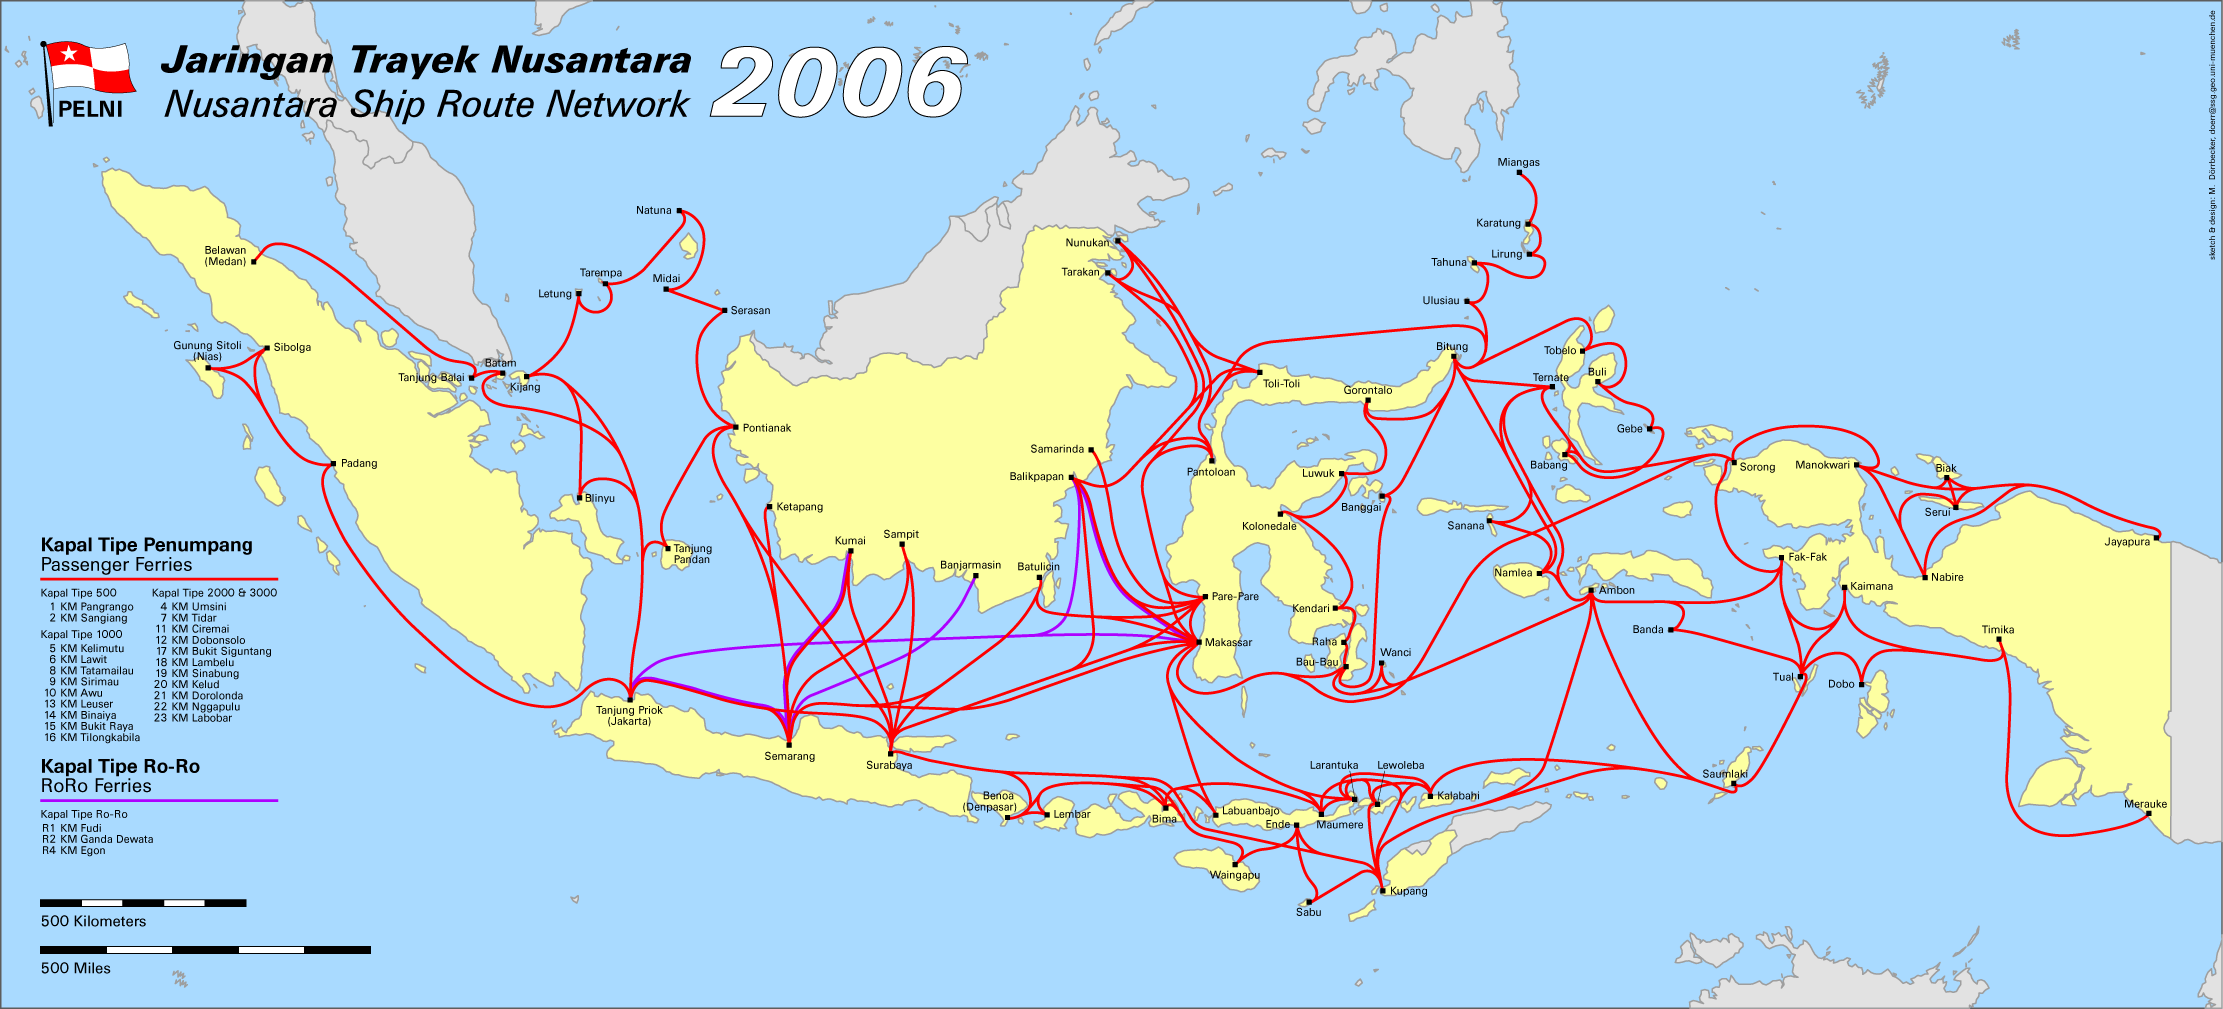 Train travel in indonesia trains jakarta surabaya ferry to bali this penli ferry route map gumiabroncs Gallery